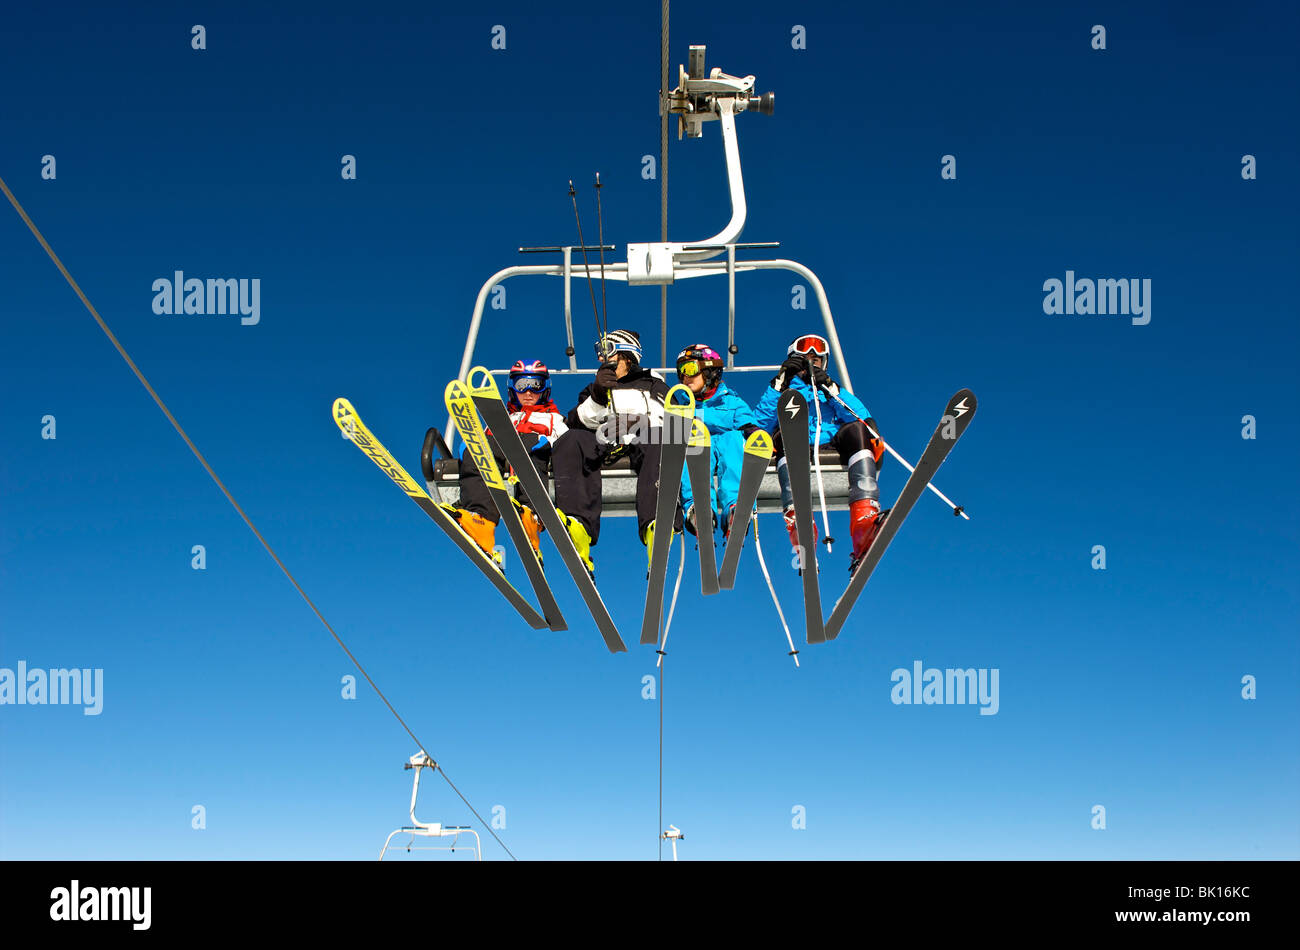 Sierra Nevada chairlift - Stock Image